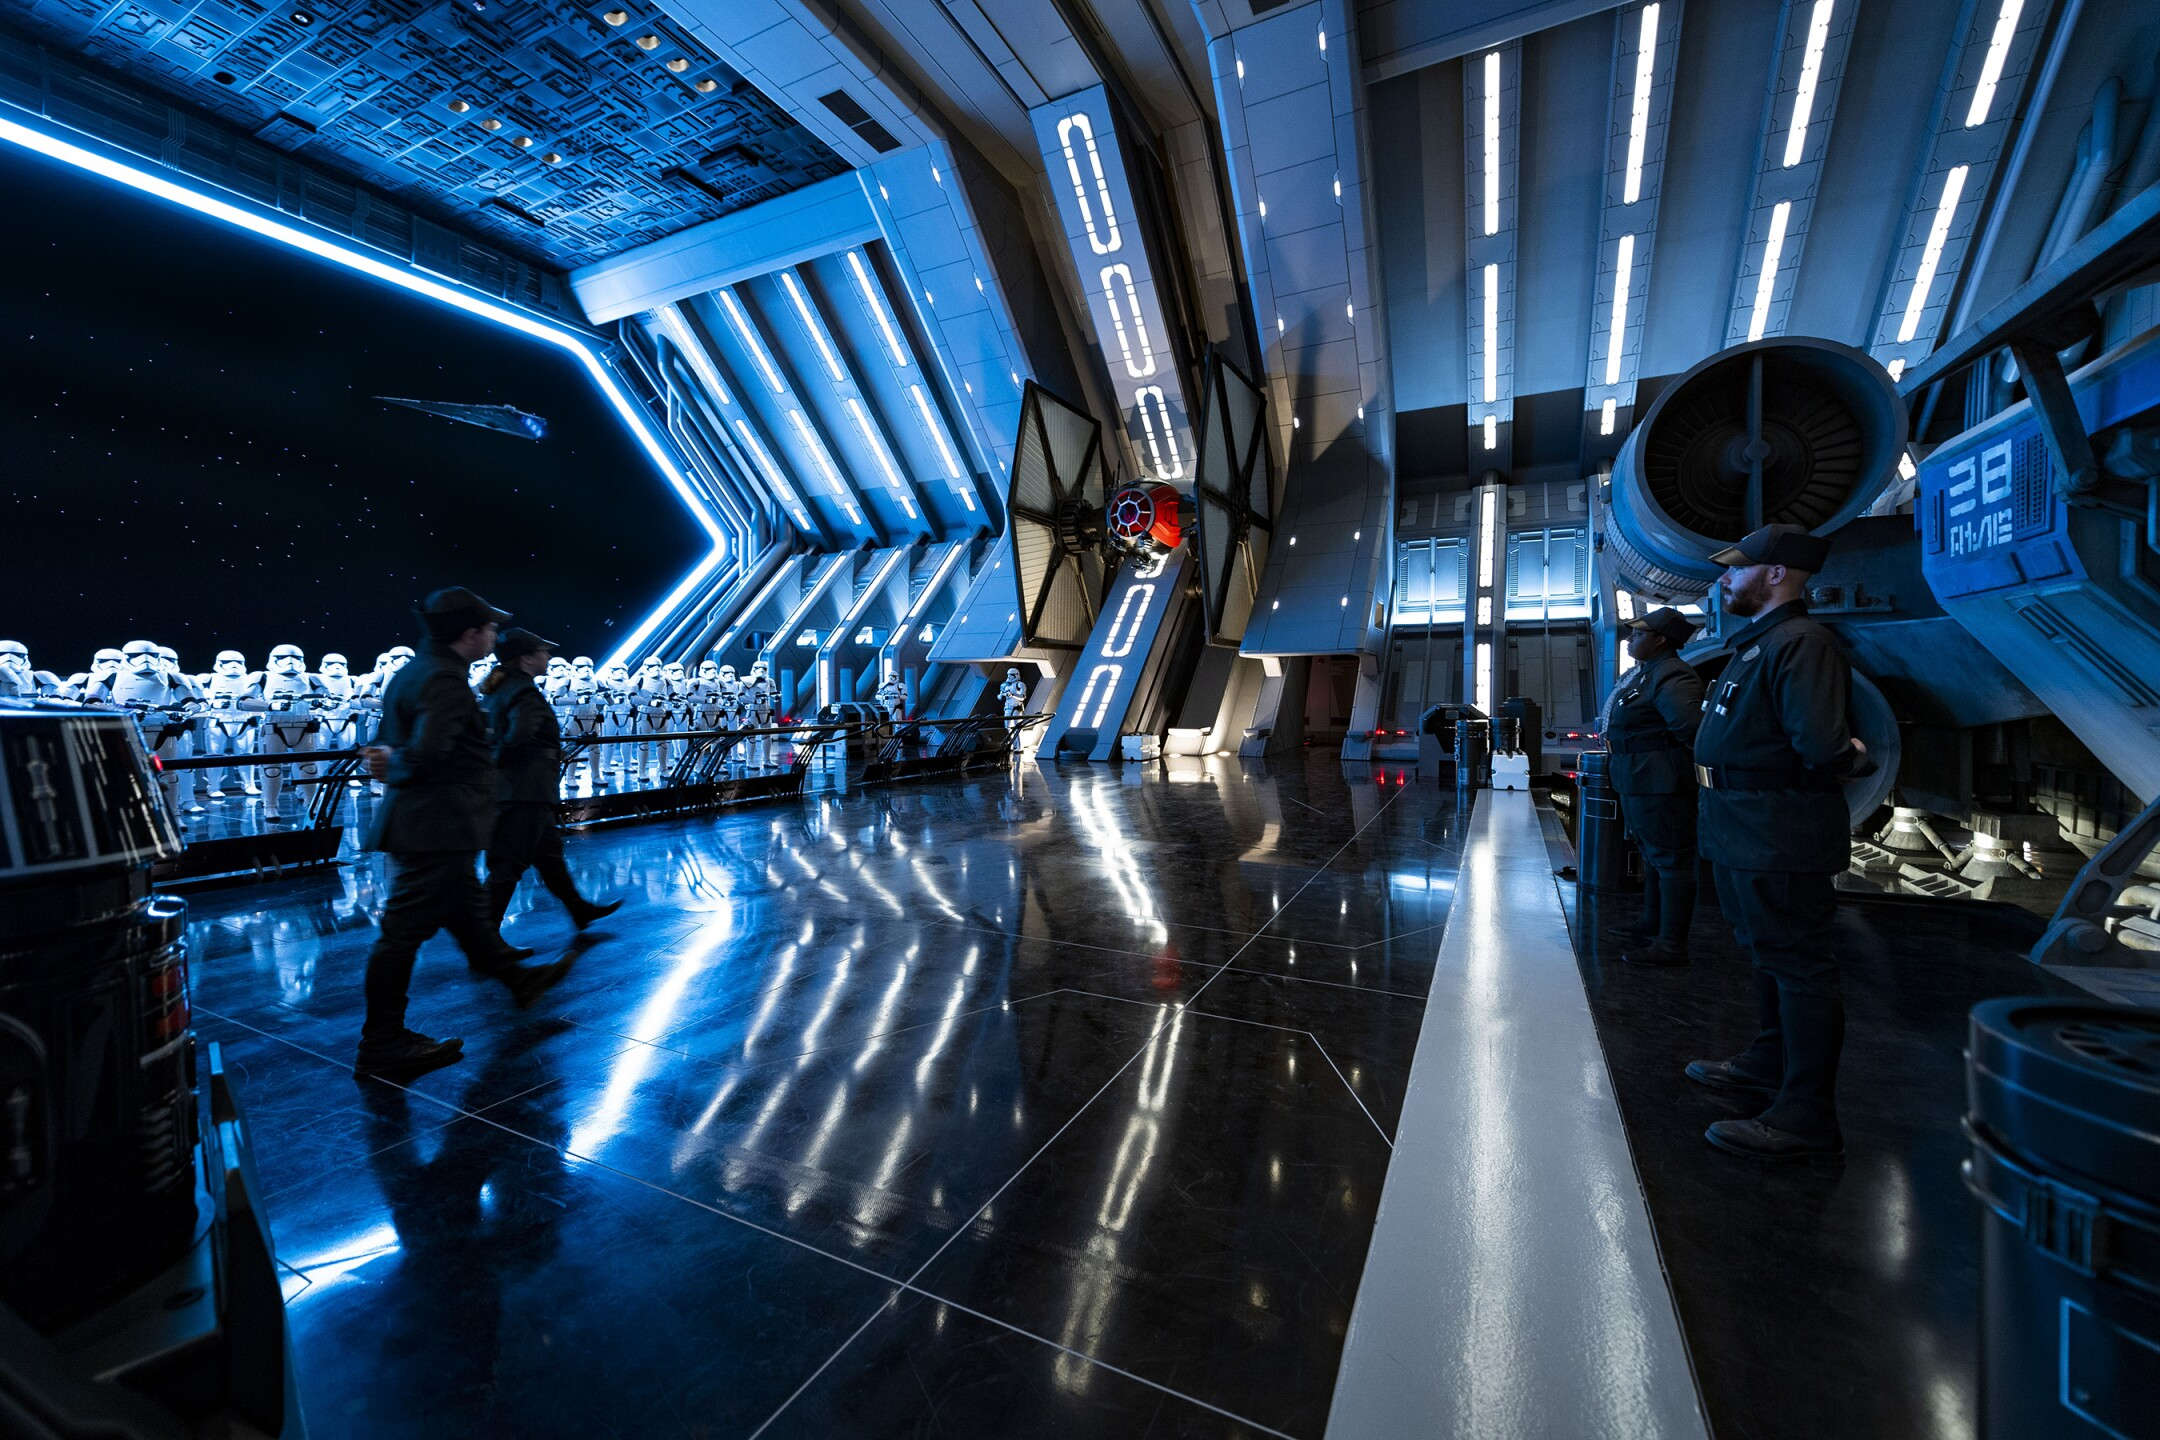 Star Destroyer Hangar Bay in Star Wars: Rise of the Resistance